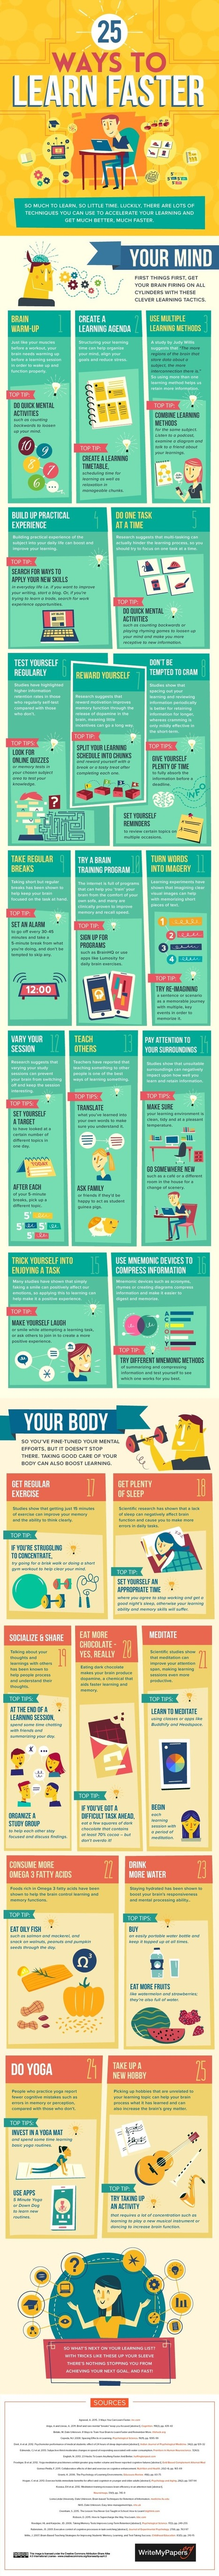 "Infographie : ""25 Ways to Learn Faster"" 